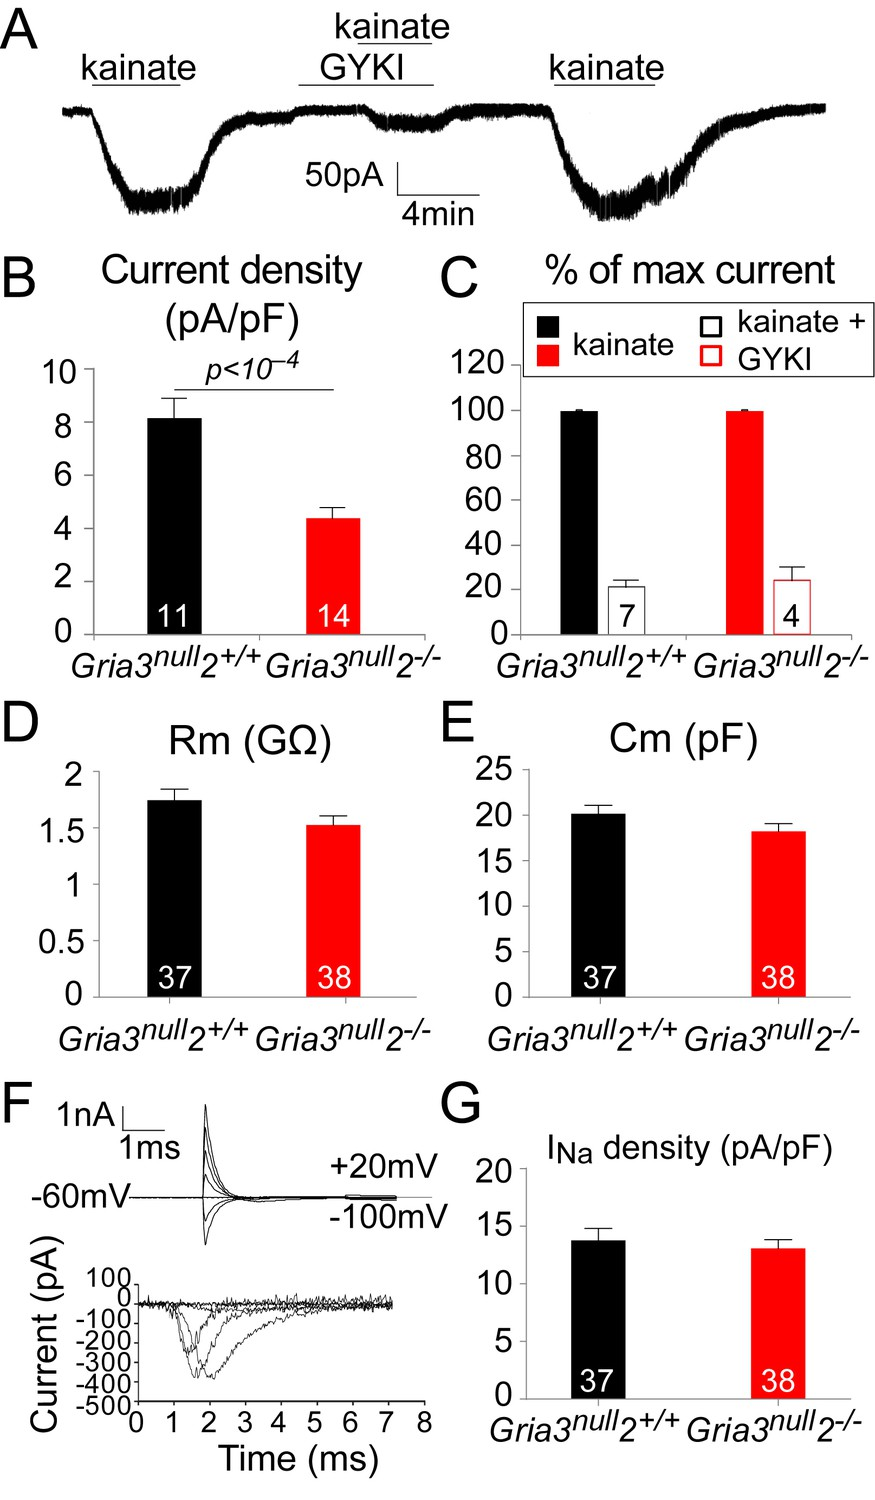 Signalling Through Ampa Receptors On Oligodendrocyte Precursors Adjustment Power Supply Values 125 15v Max Current 05 Amp The Kainate Evoked In Ops Is Reduced Gria3null2 Mice